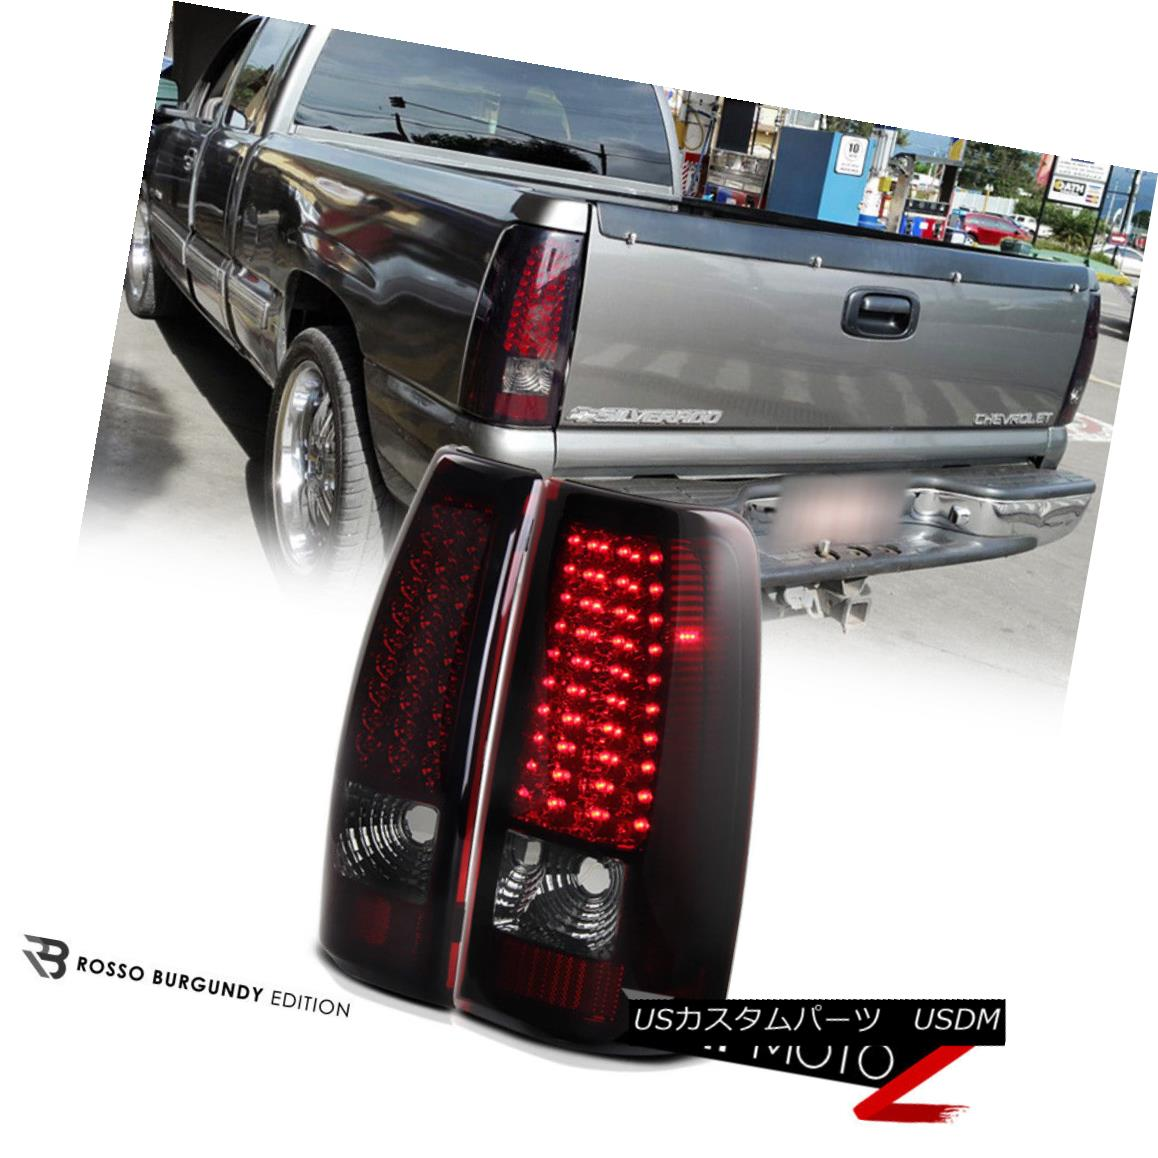 テールライト 99-02 Chevy Silverado Truck 1500/2500/3500 LED RED/SMOKE Tail Light Brake Lamps 99-02 Chevy Silveradoトラック1500/2500/3500 LED RED / SMOKEテールライトブレーキランプ